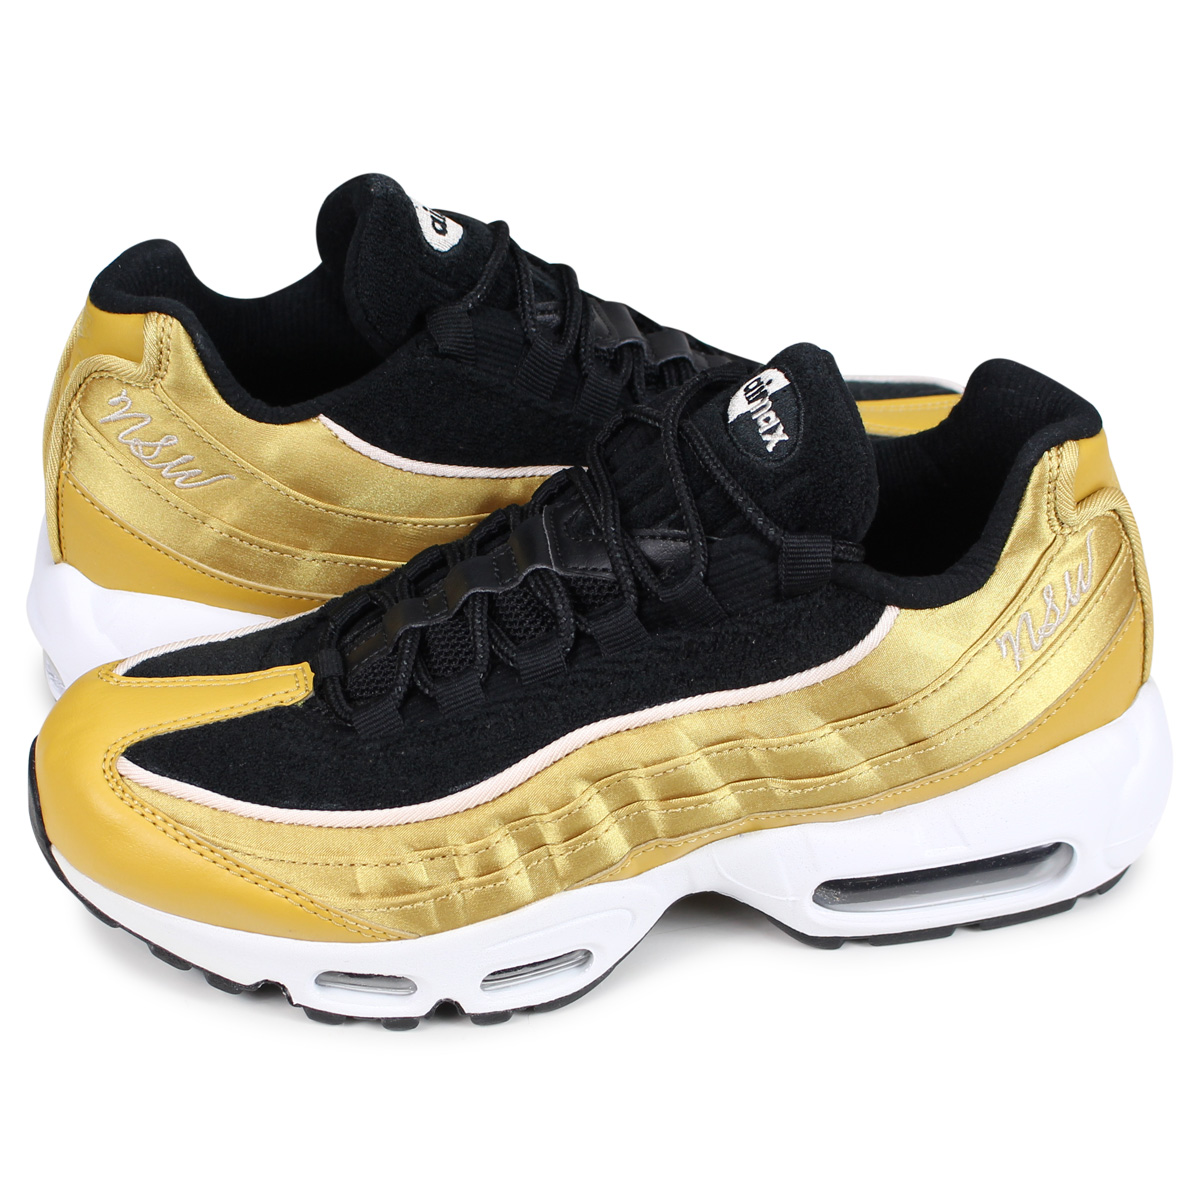 72c7d52c00 Nike NIKE Air Max 95 sneakers Lady's men WMNS AIR MAX 95 LX gold AA1103- ...